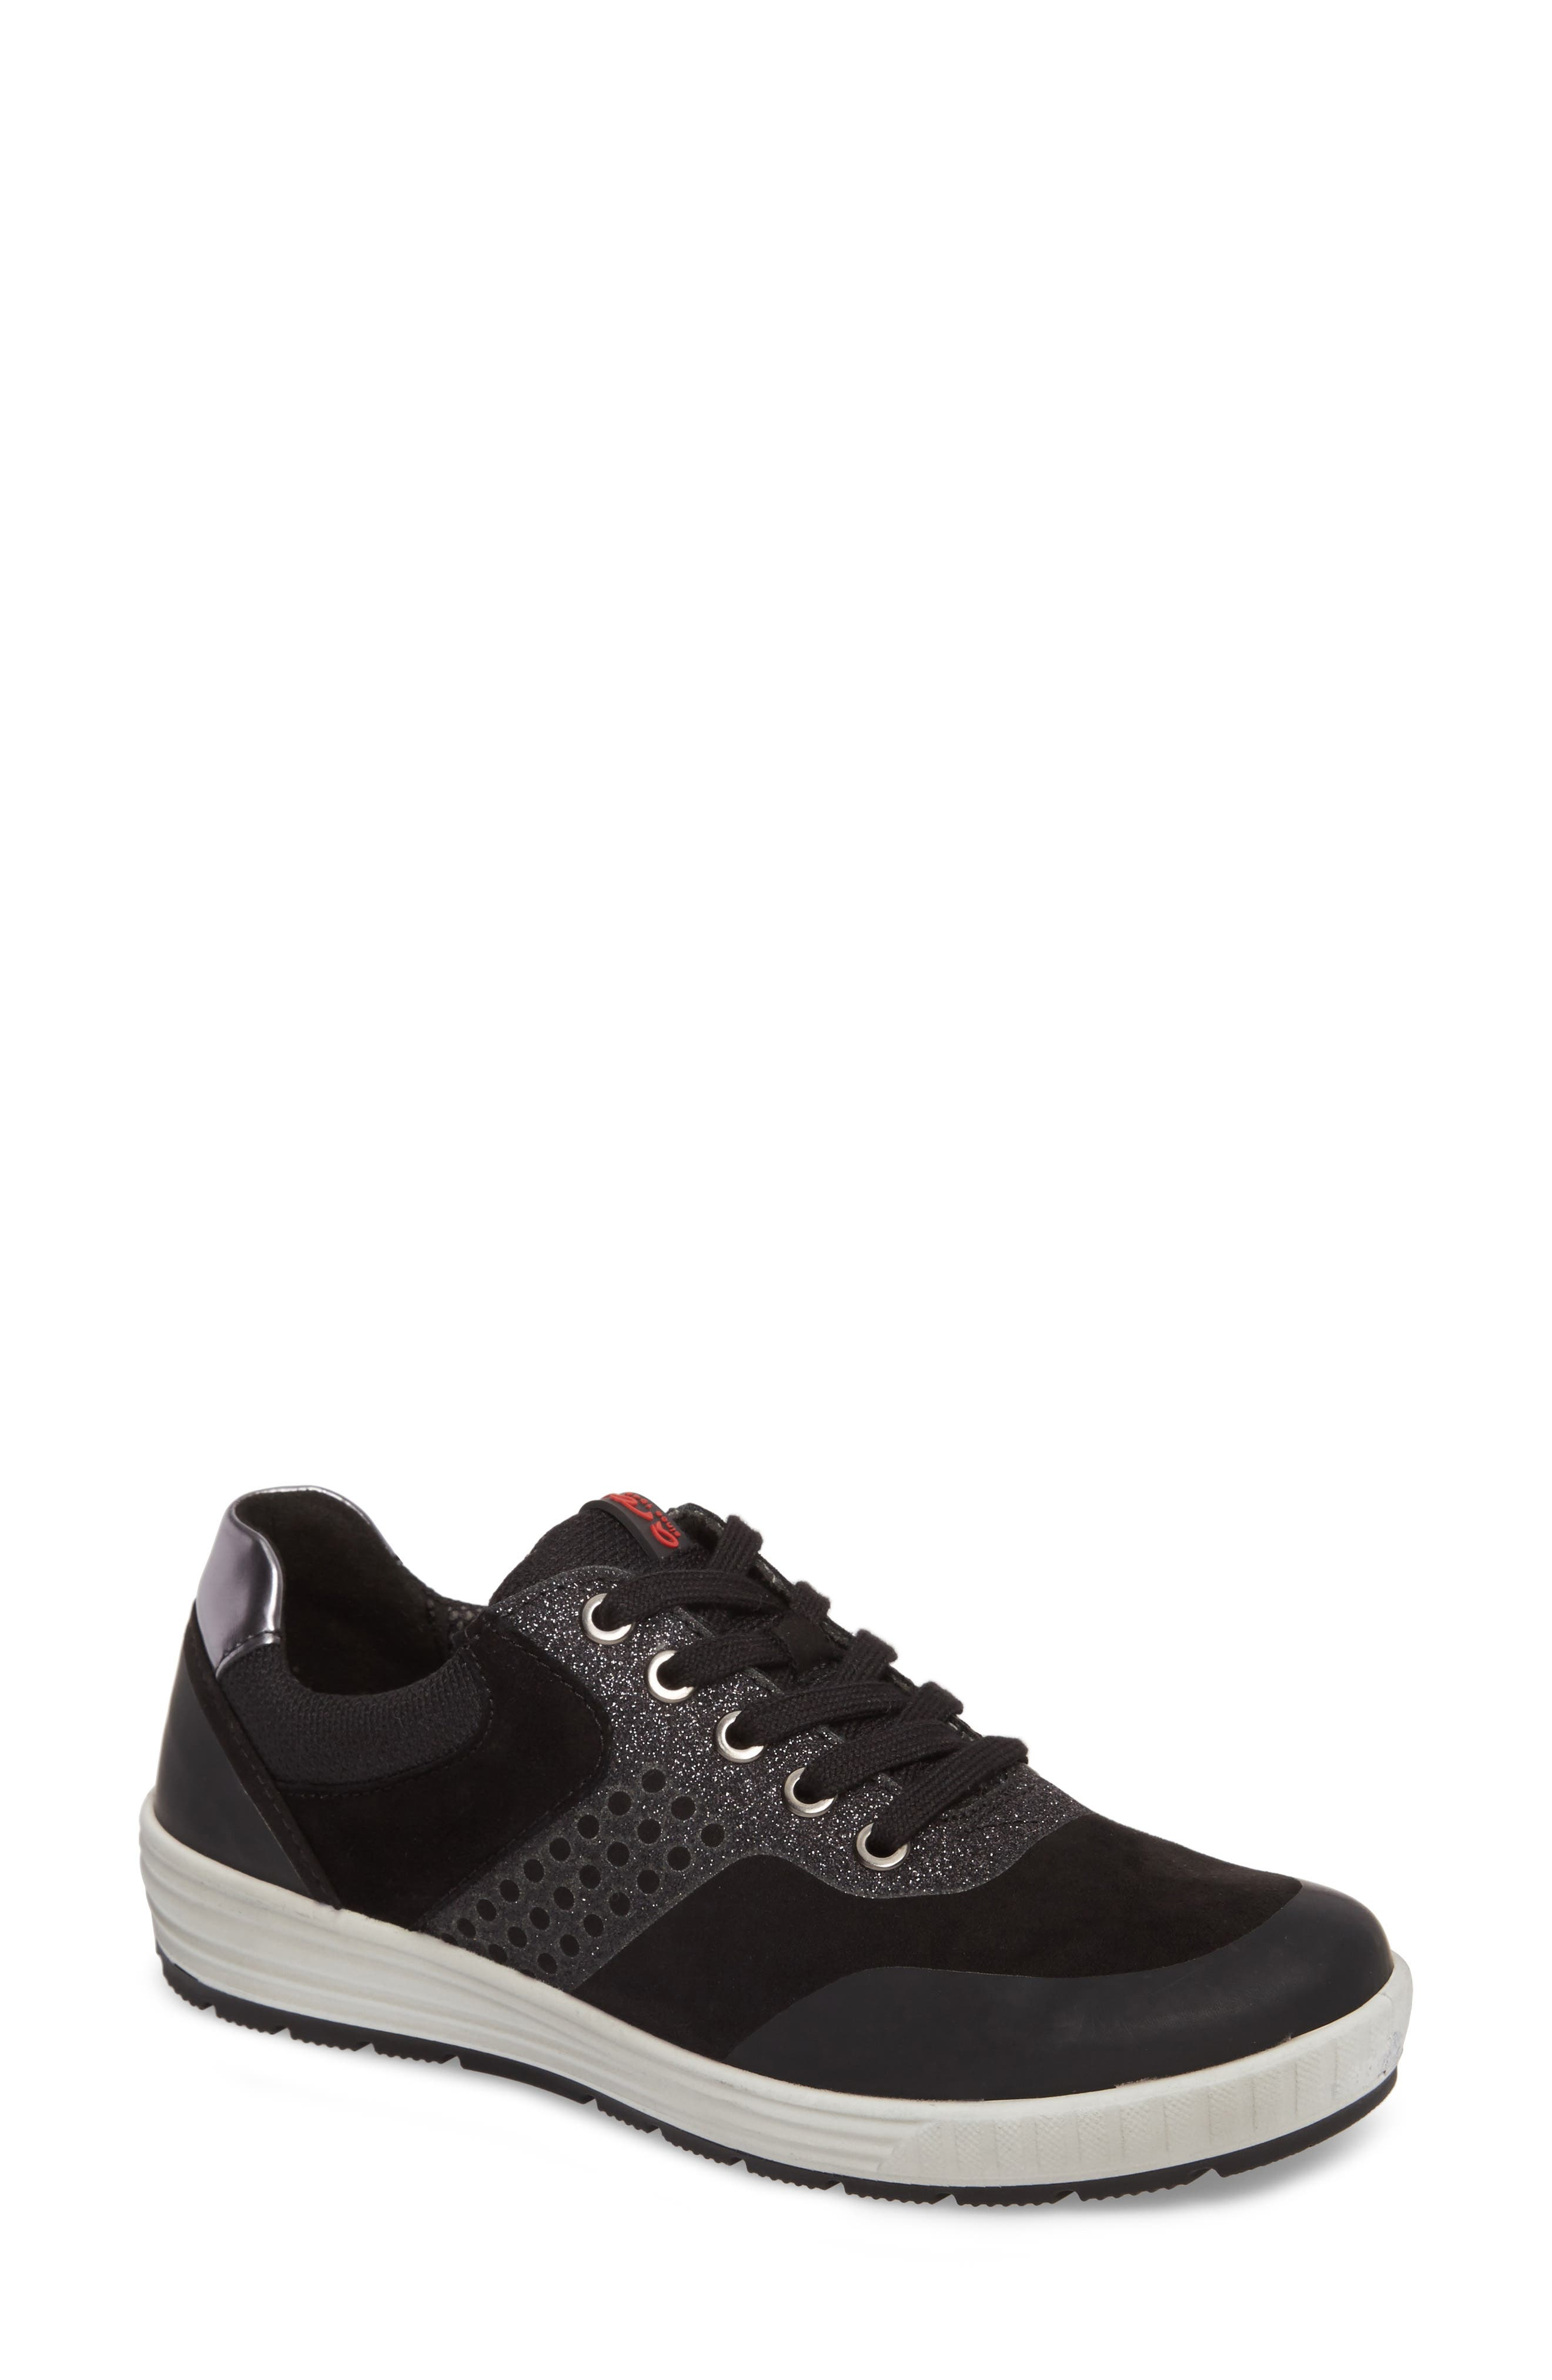 Alternate Image 1 Selected - ara Natalie Sneaker (Women)